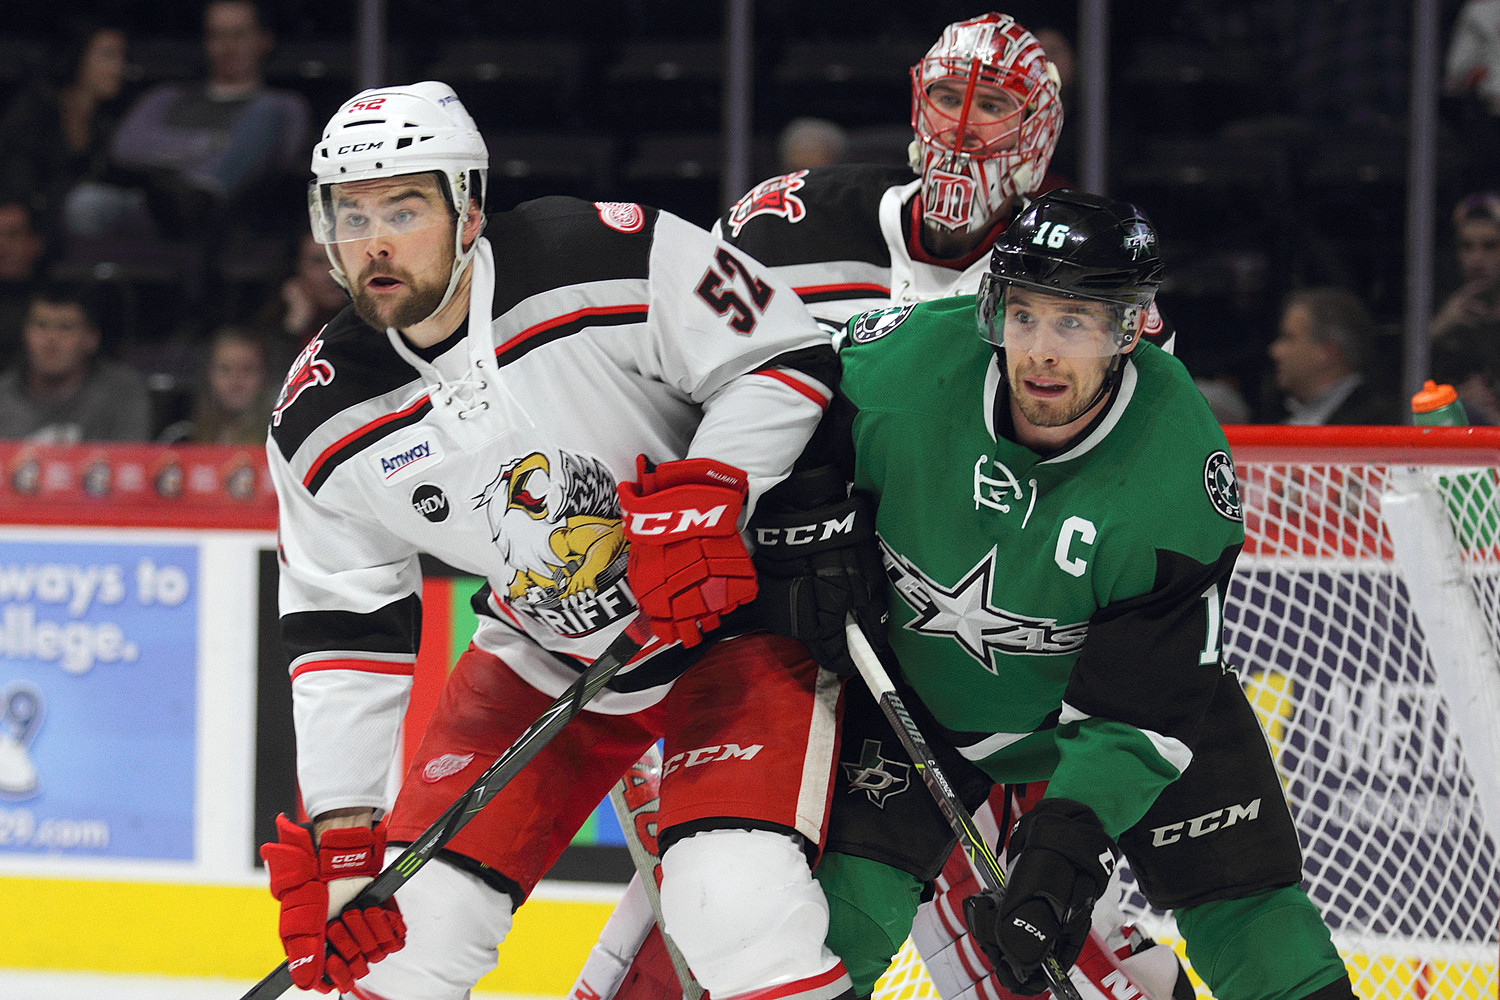 Curtis McKenzie scored three goals and the Texas Stars beat the Grand Rapids Griffins 5-2 on Wednesday night.